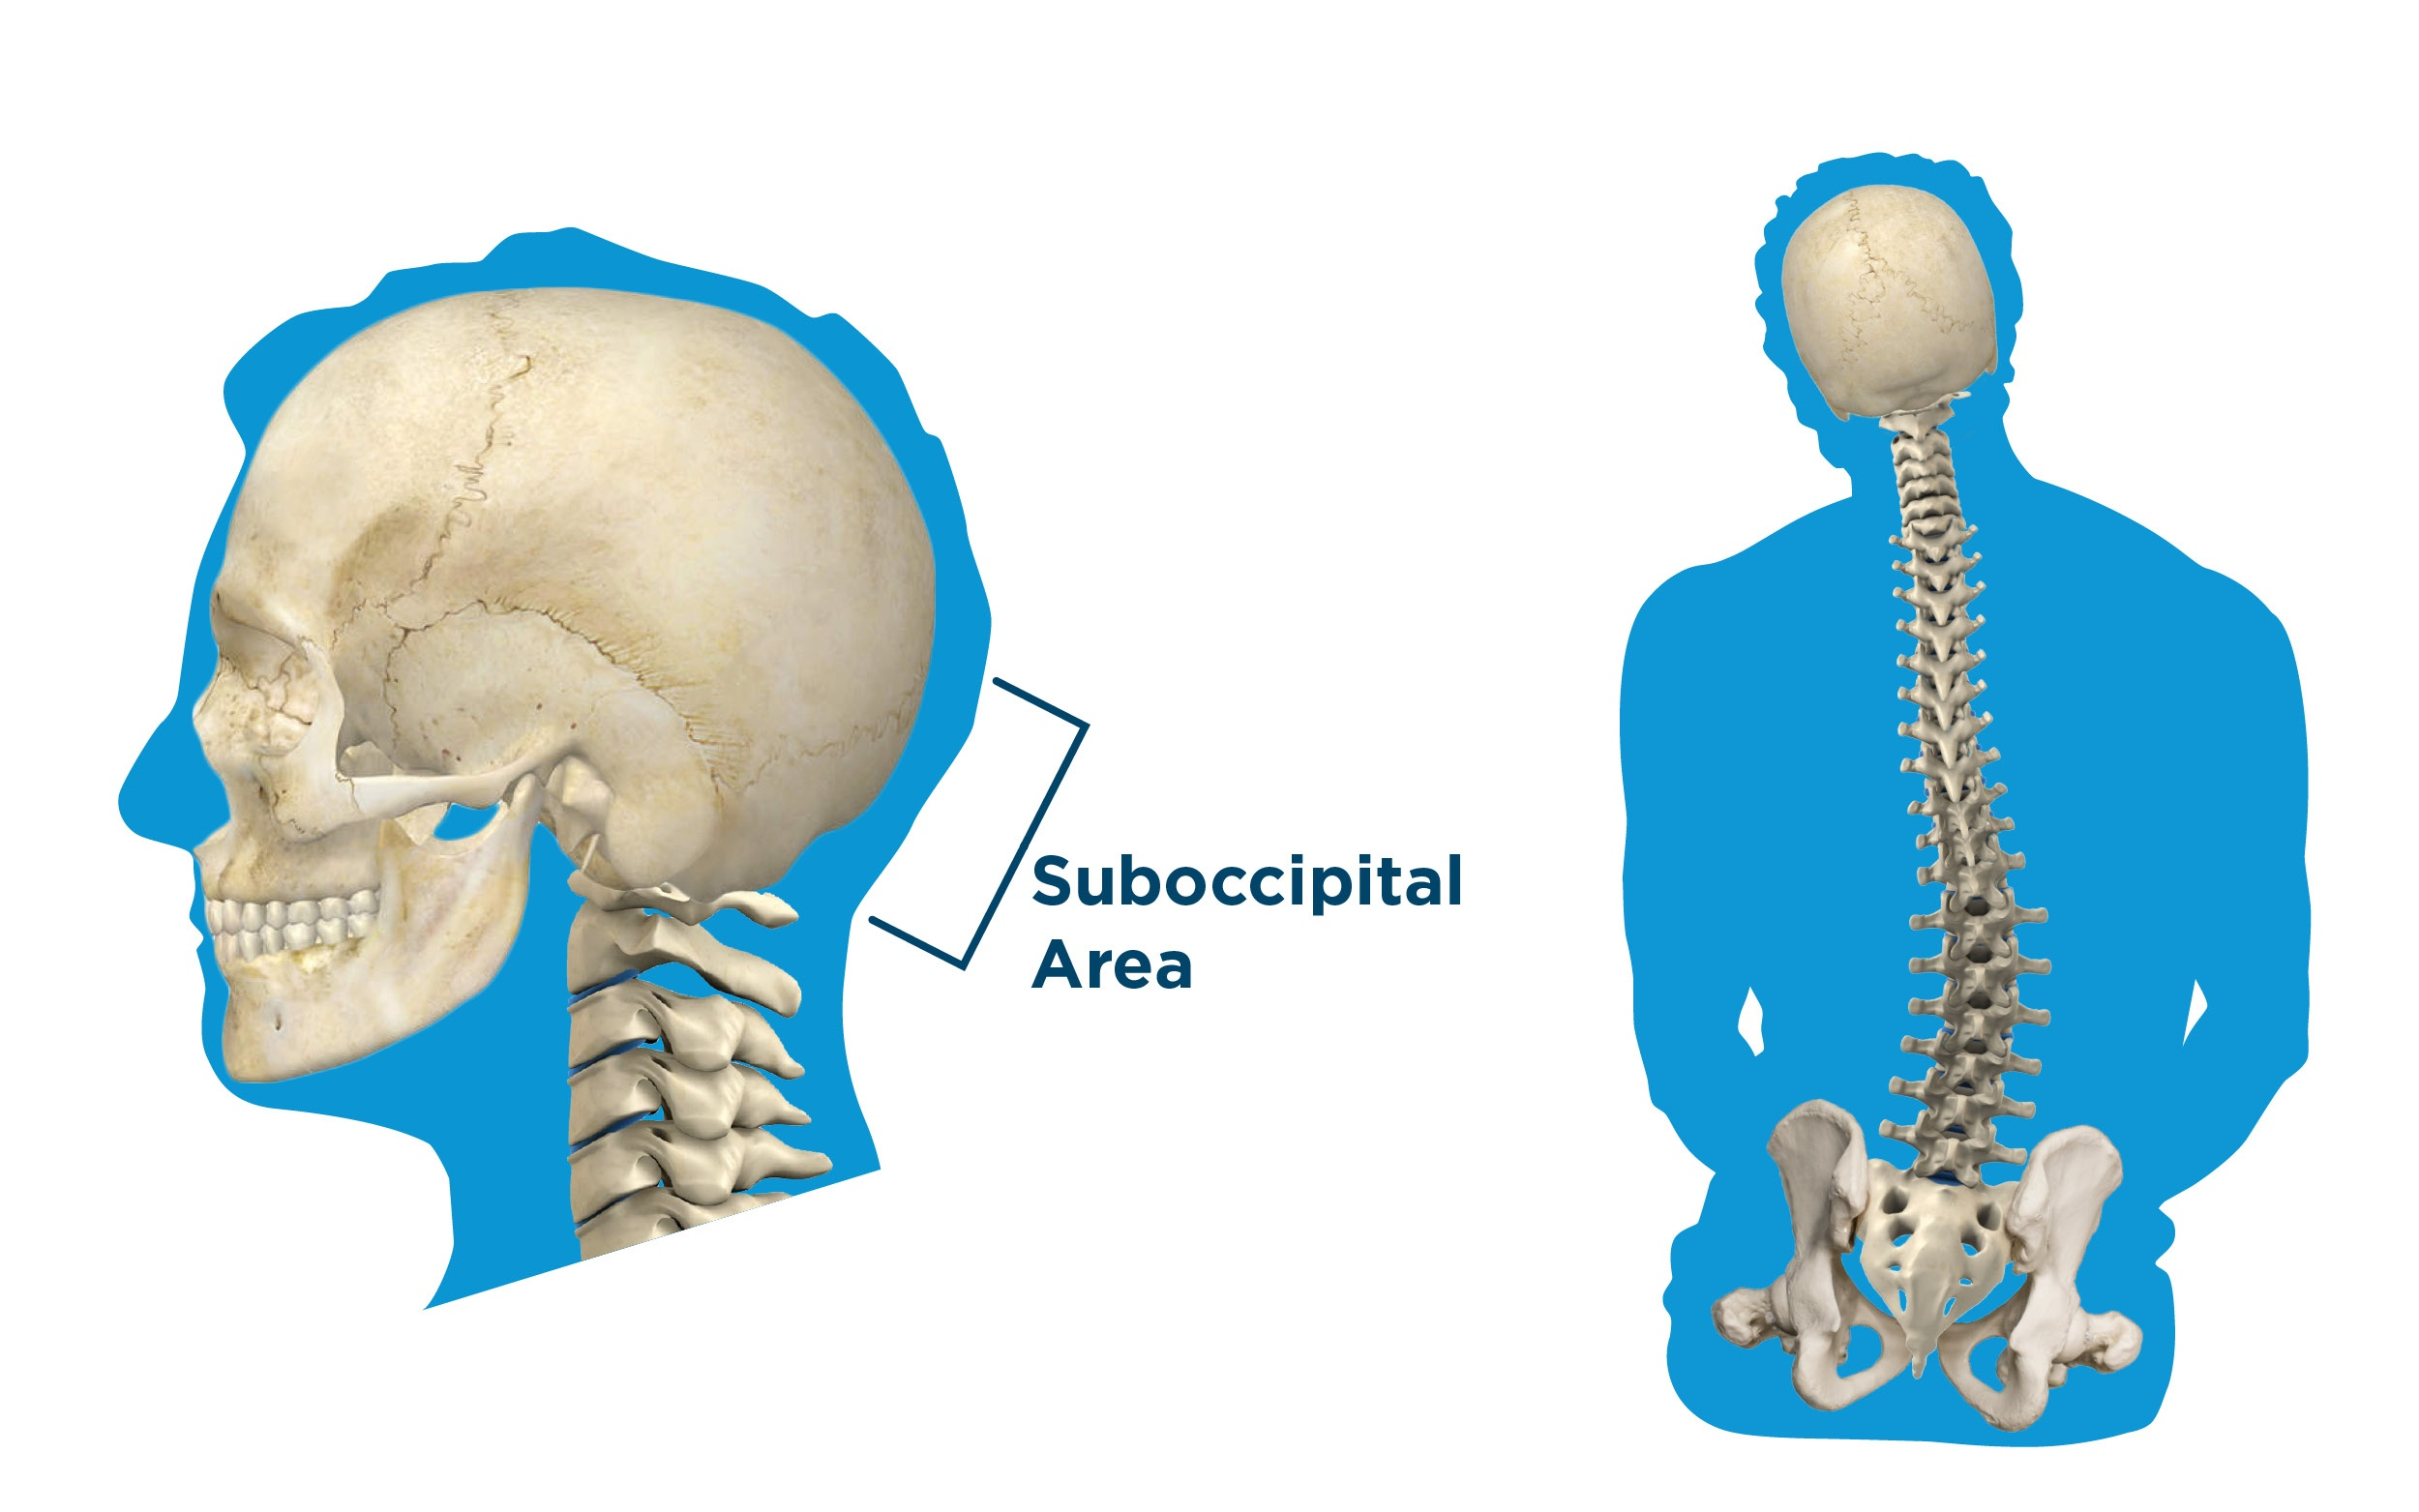 Wheelchair_HeadSupport_Measuring_Guide - Head Support